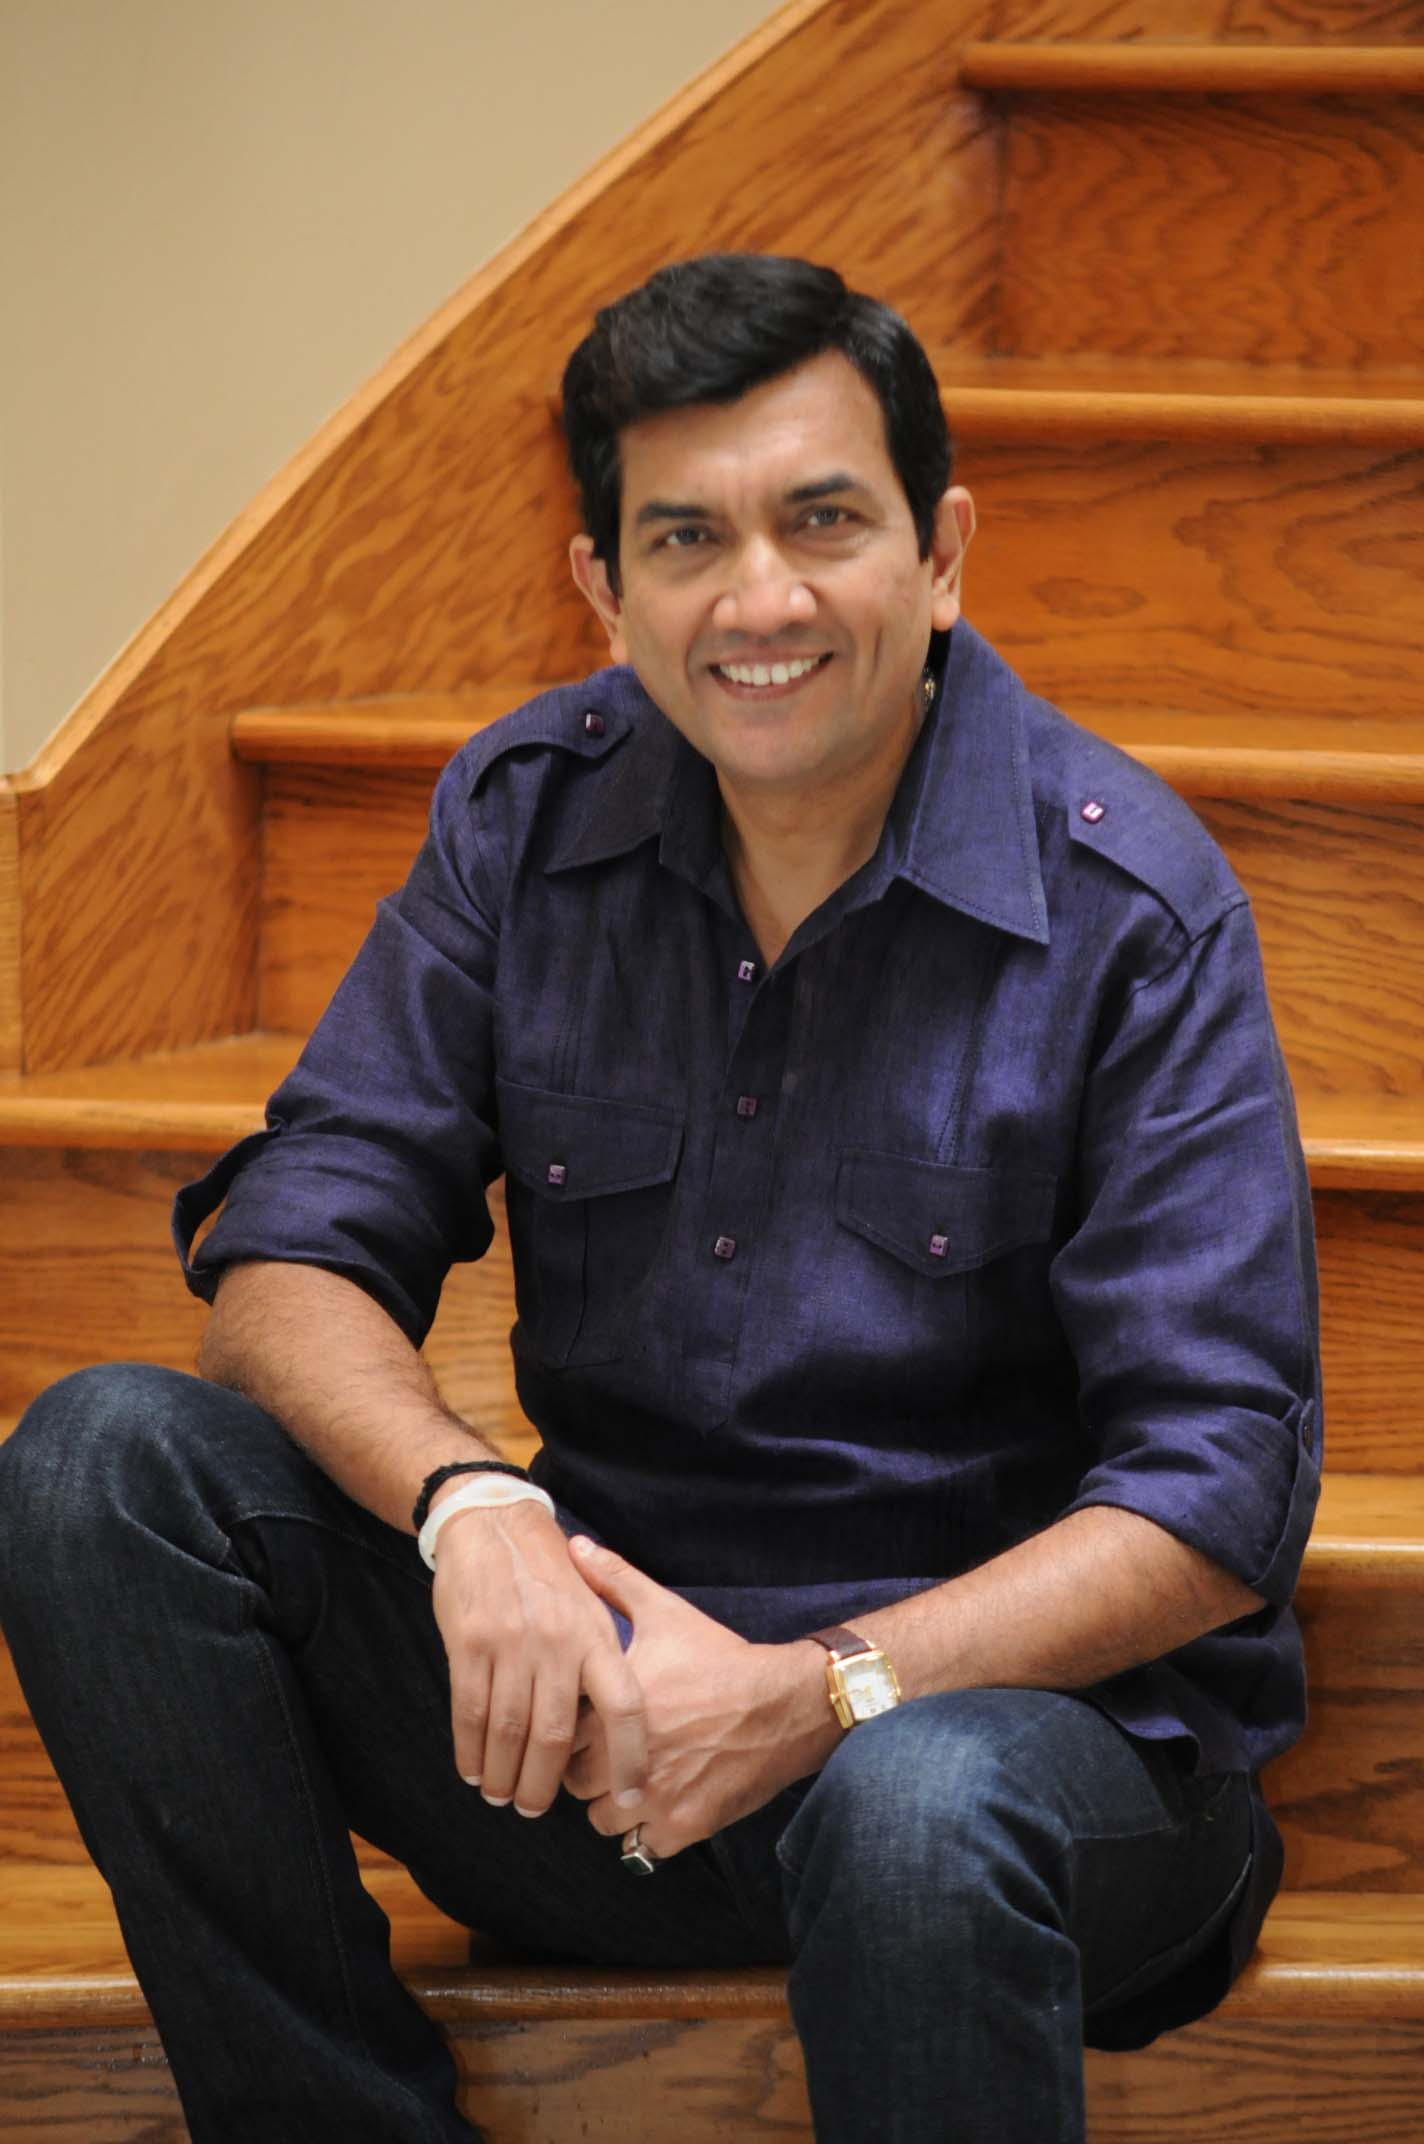 Sanjeev kapoor master chef tv show host author of best selling cookbooks foodfood tv channel restaurant consultant architect of a unique range of food products and forumfinder Images